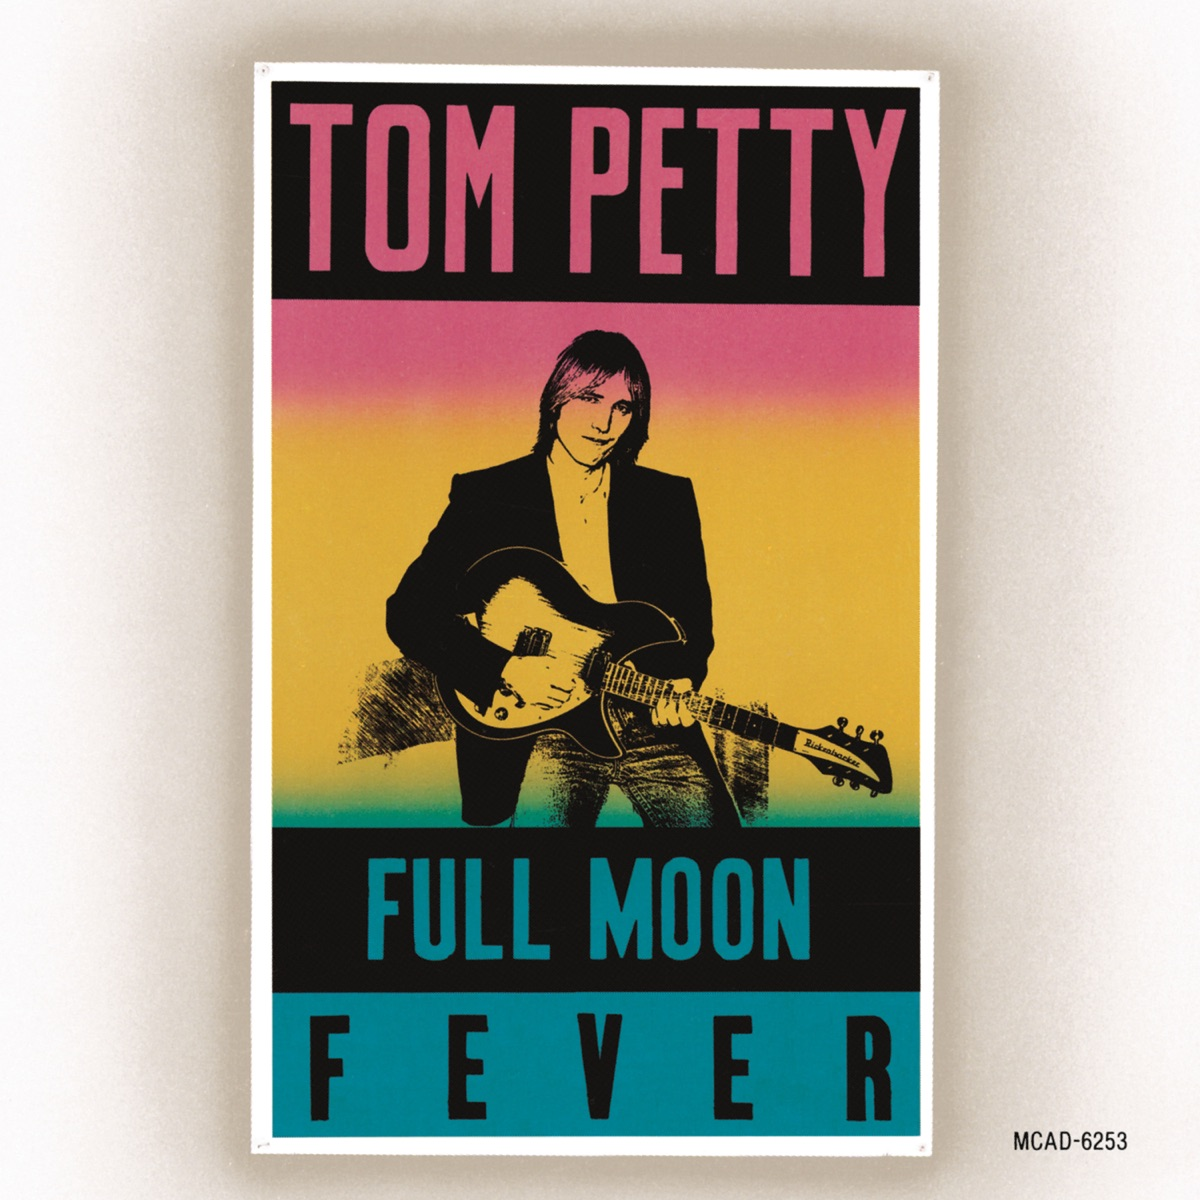 Full Moon Fever Tom Petty CD cover